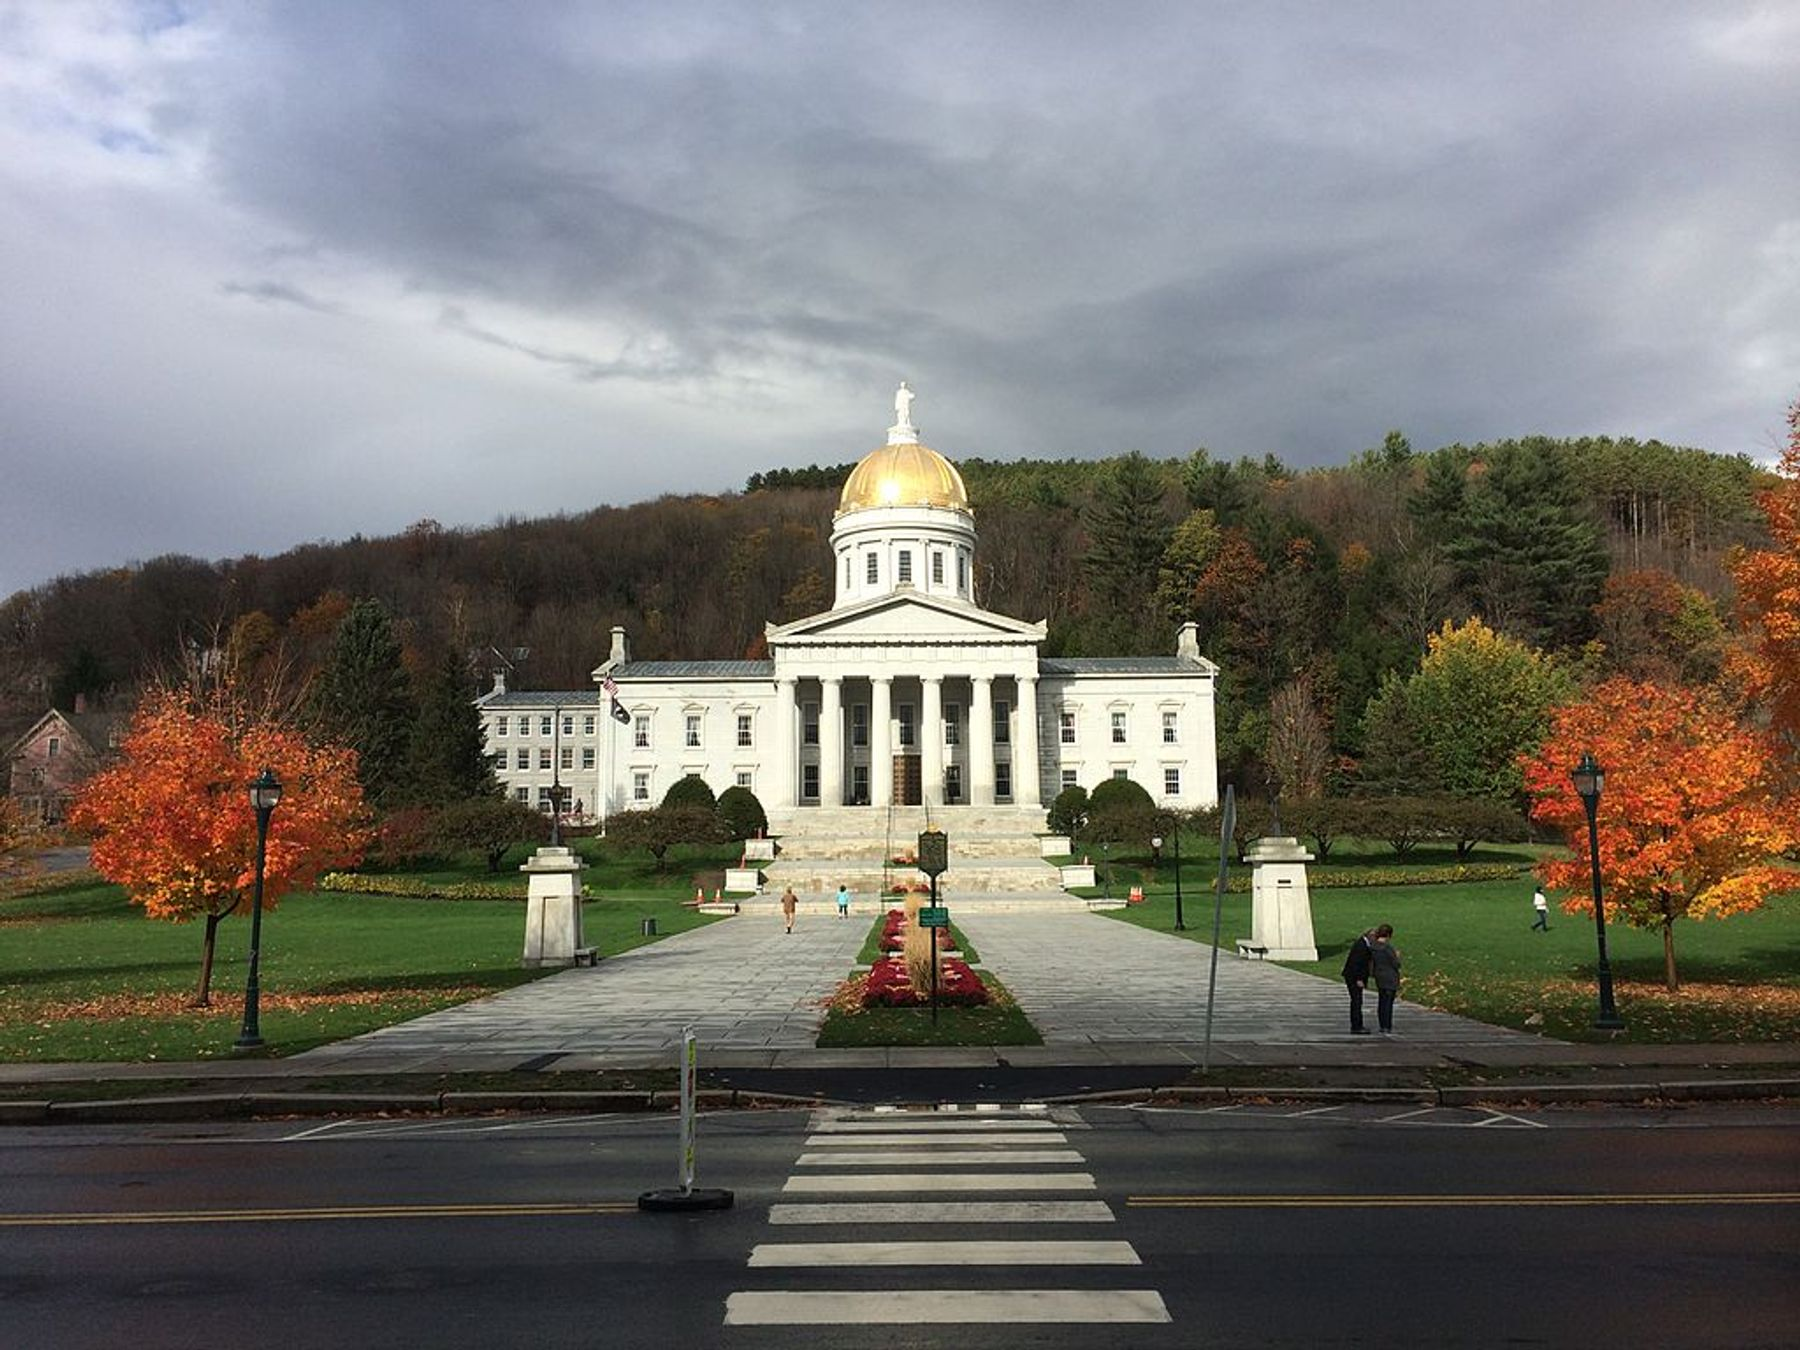 Vermont state house in october